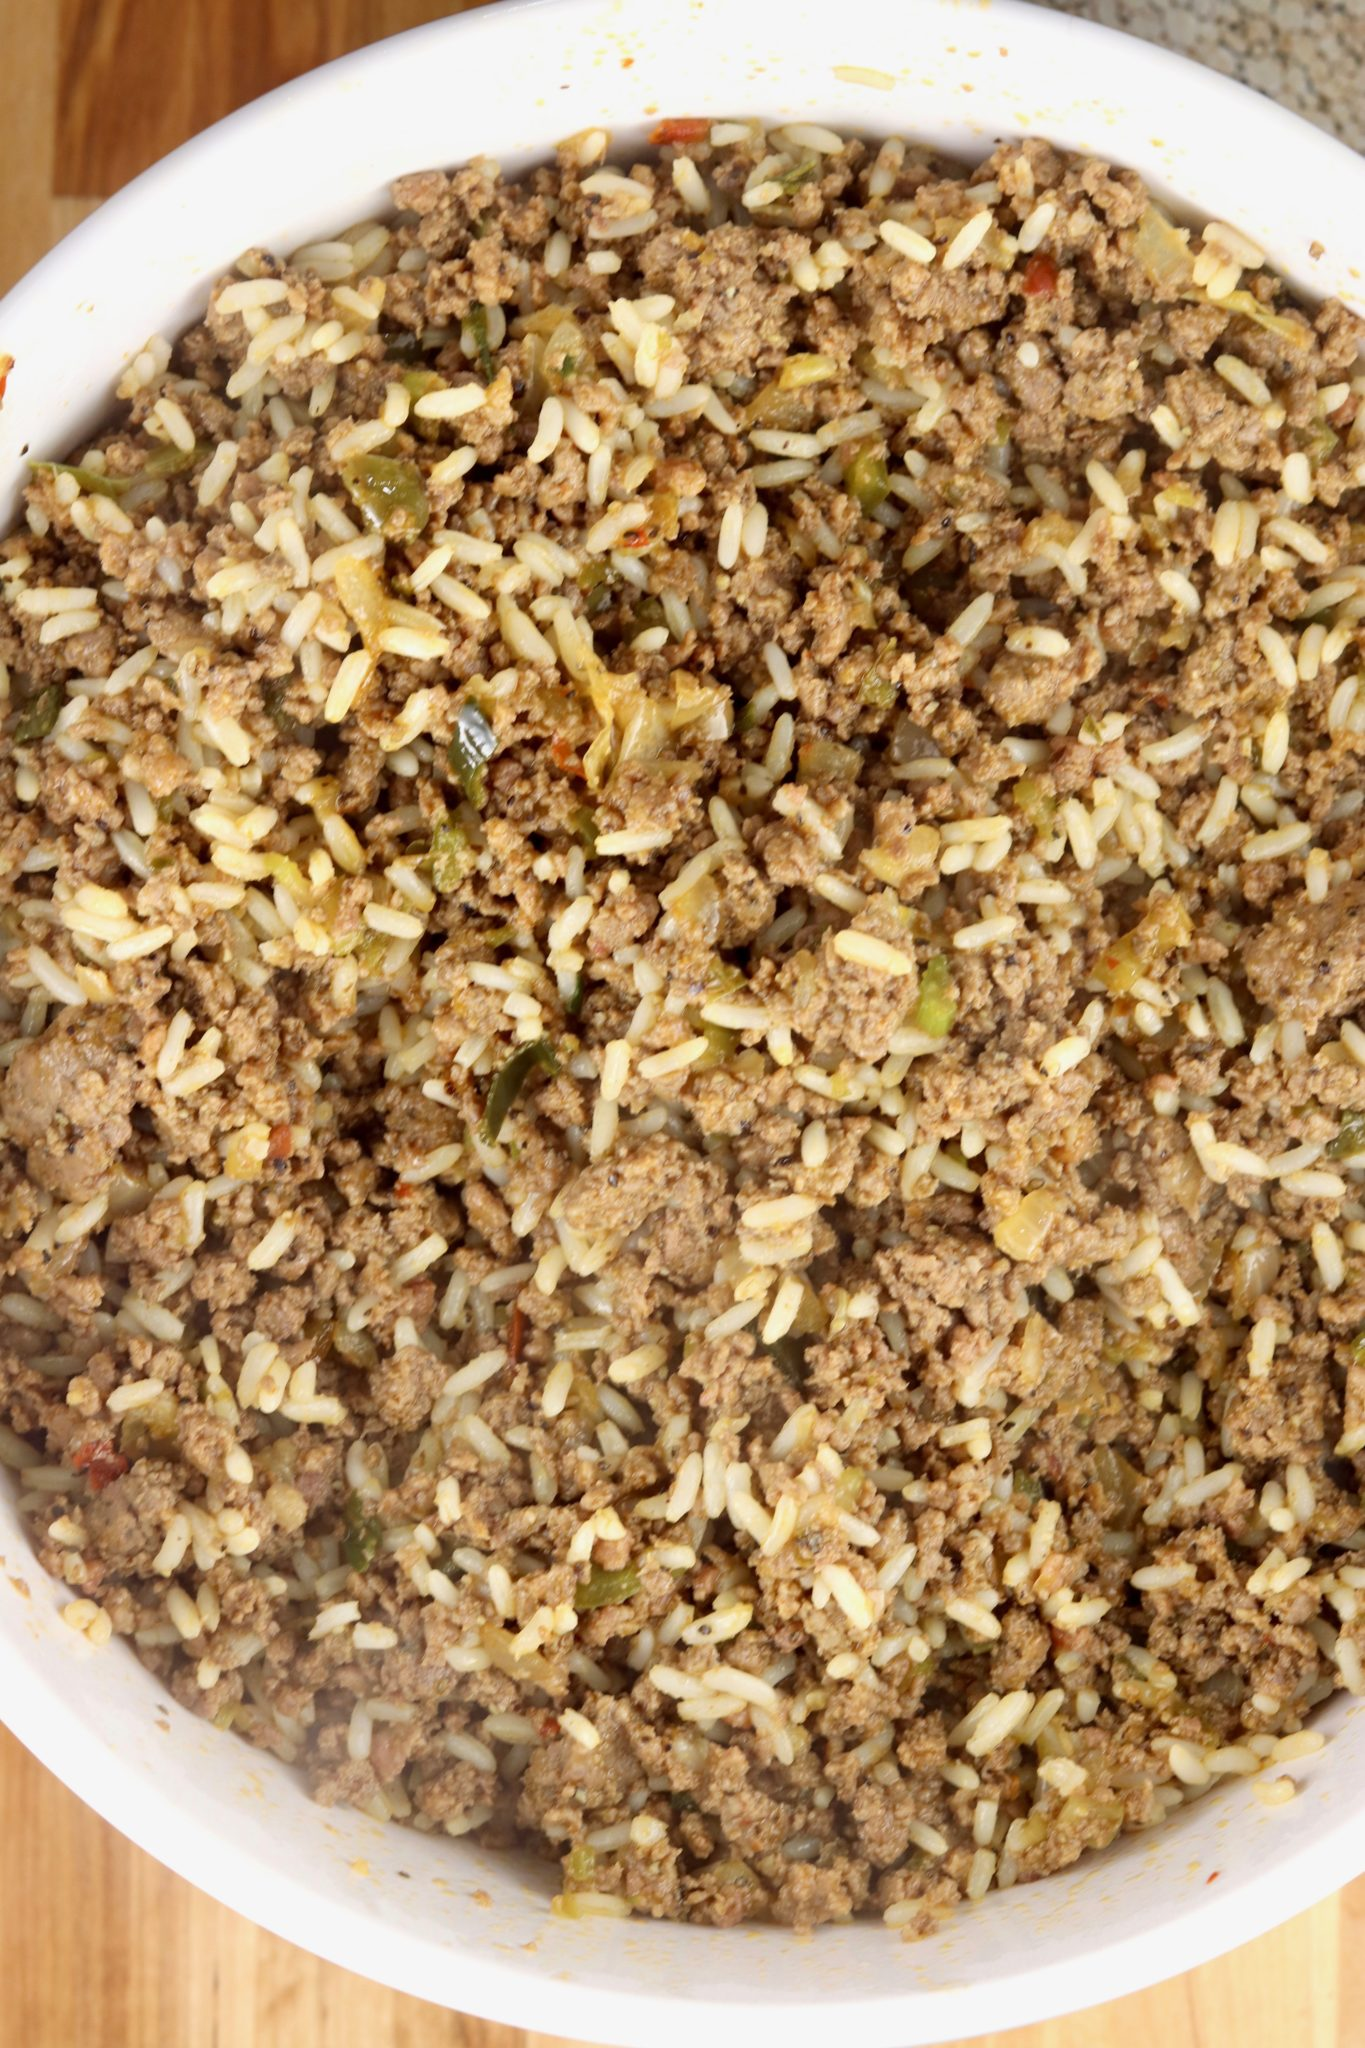 Rice and sausage mixture for Boudin